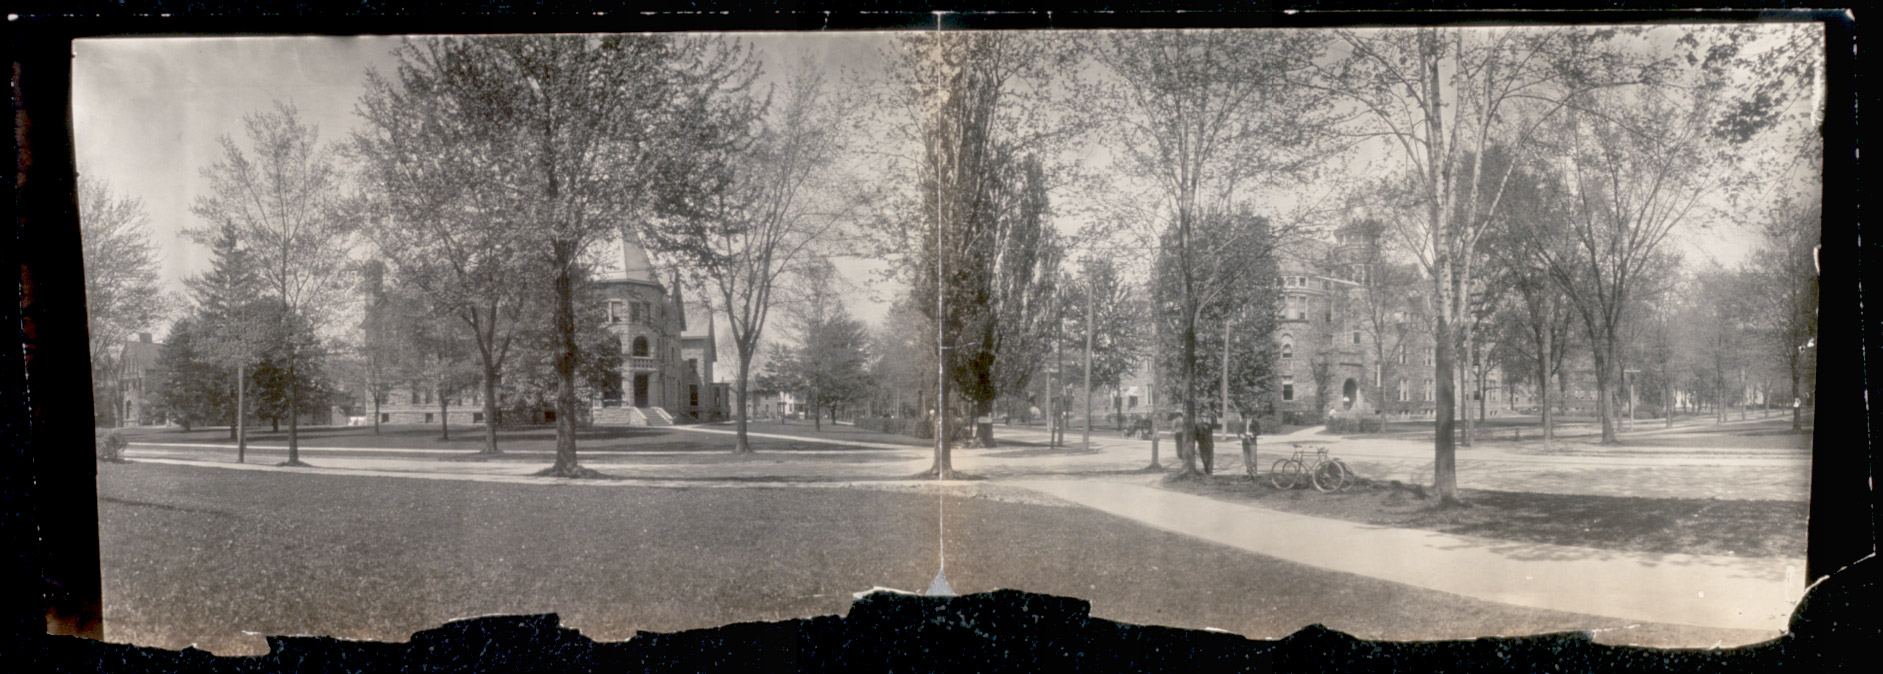 A scene from Oberlin College around the turn of the 20th century.